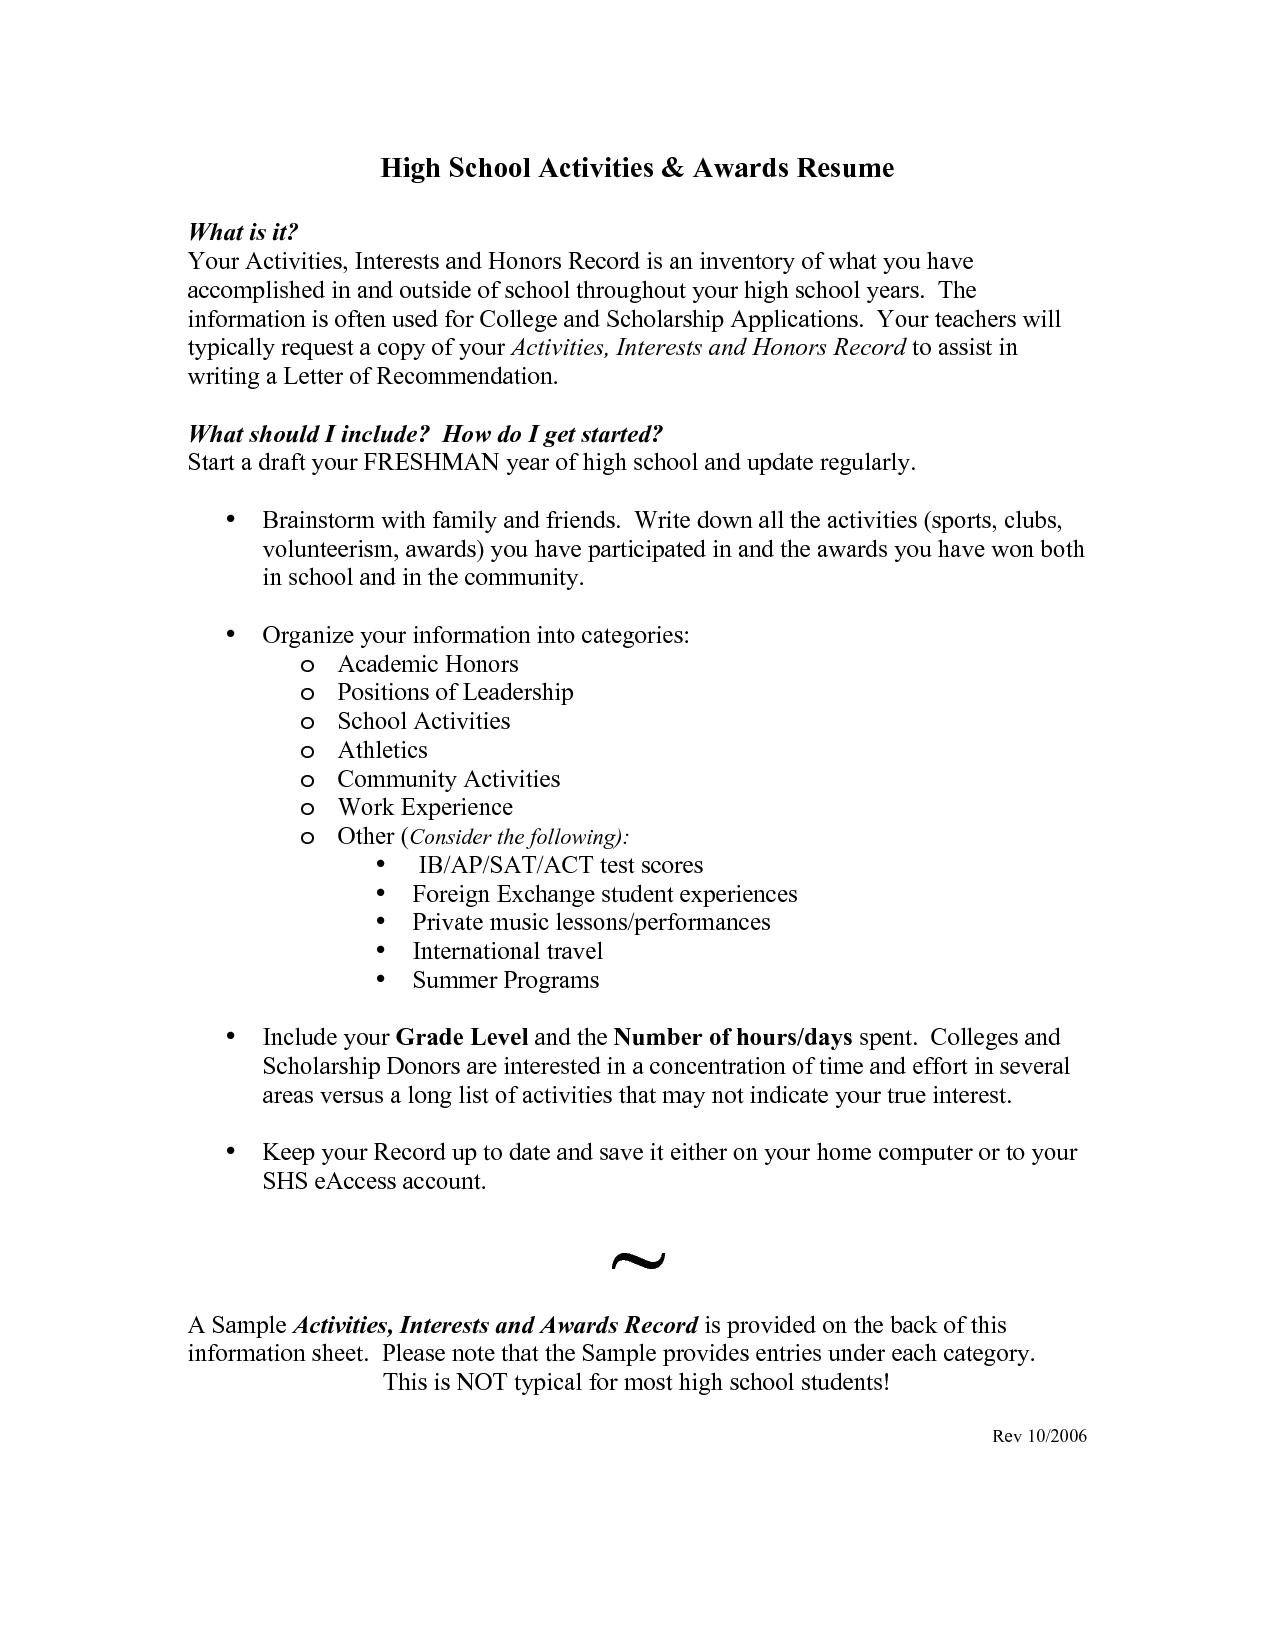 Student Teaching Resume Example Resume For High School Student For College Applications